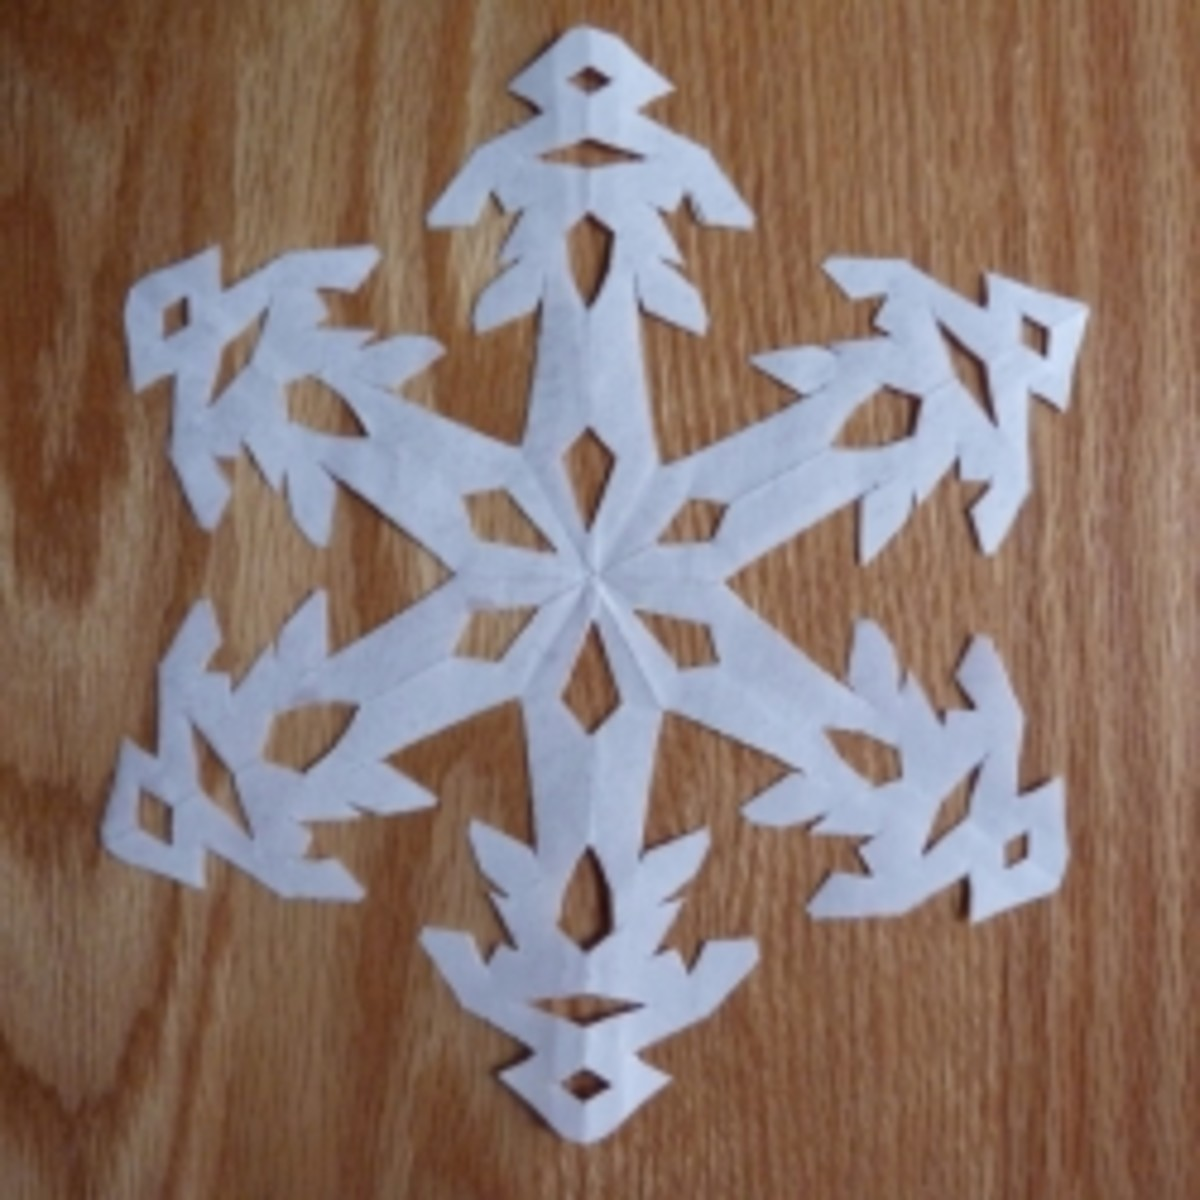 Instructions for Making Paper Snowflakes  HubPages